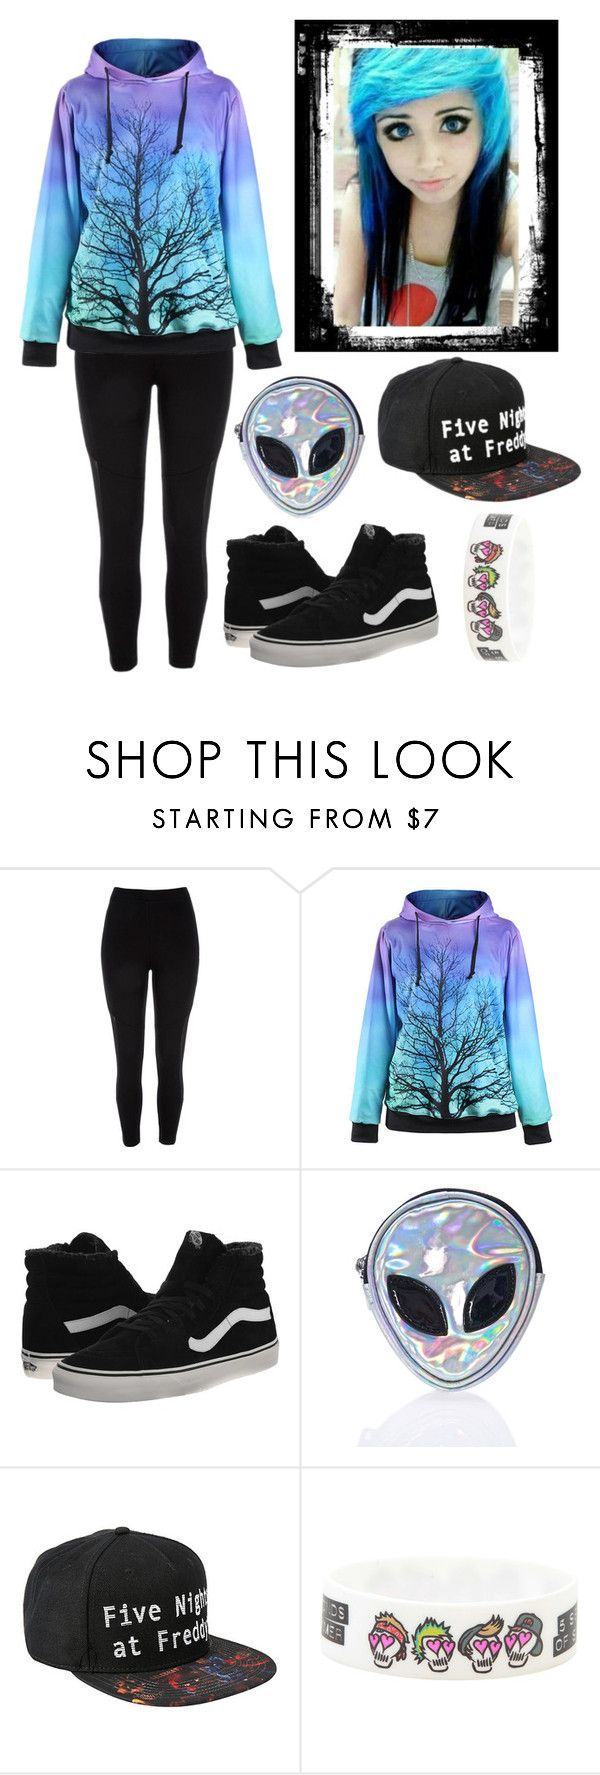 """Scene Girl Junior Outfit #6"" by taylor-kennedy-i ❤ liked on Polyvore featuring River Island, Vans, Disturbia, school, scene, fashionset and Junior"